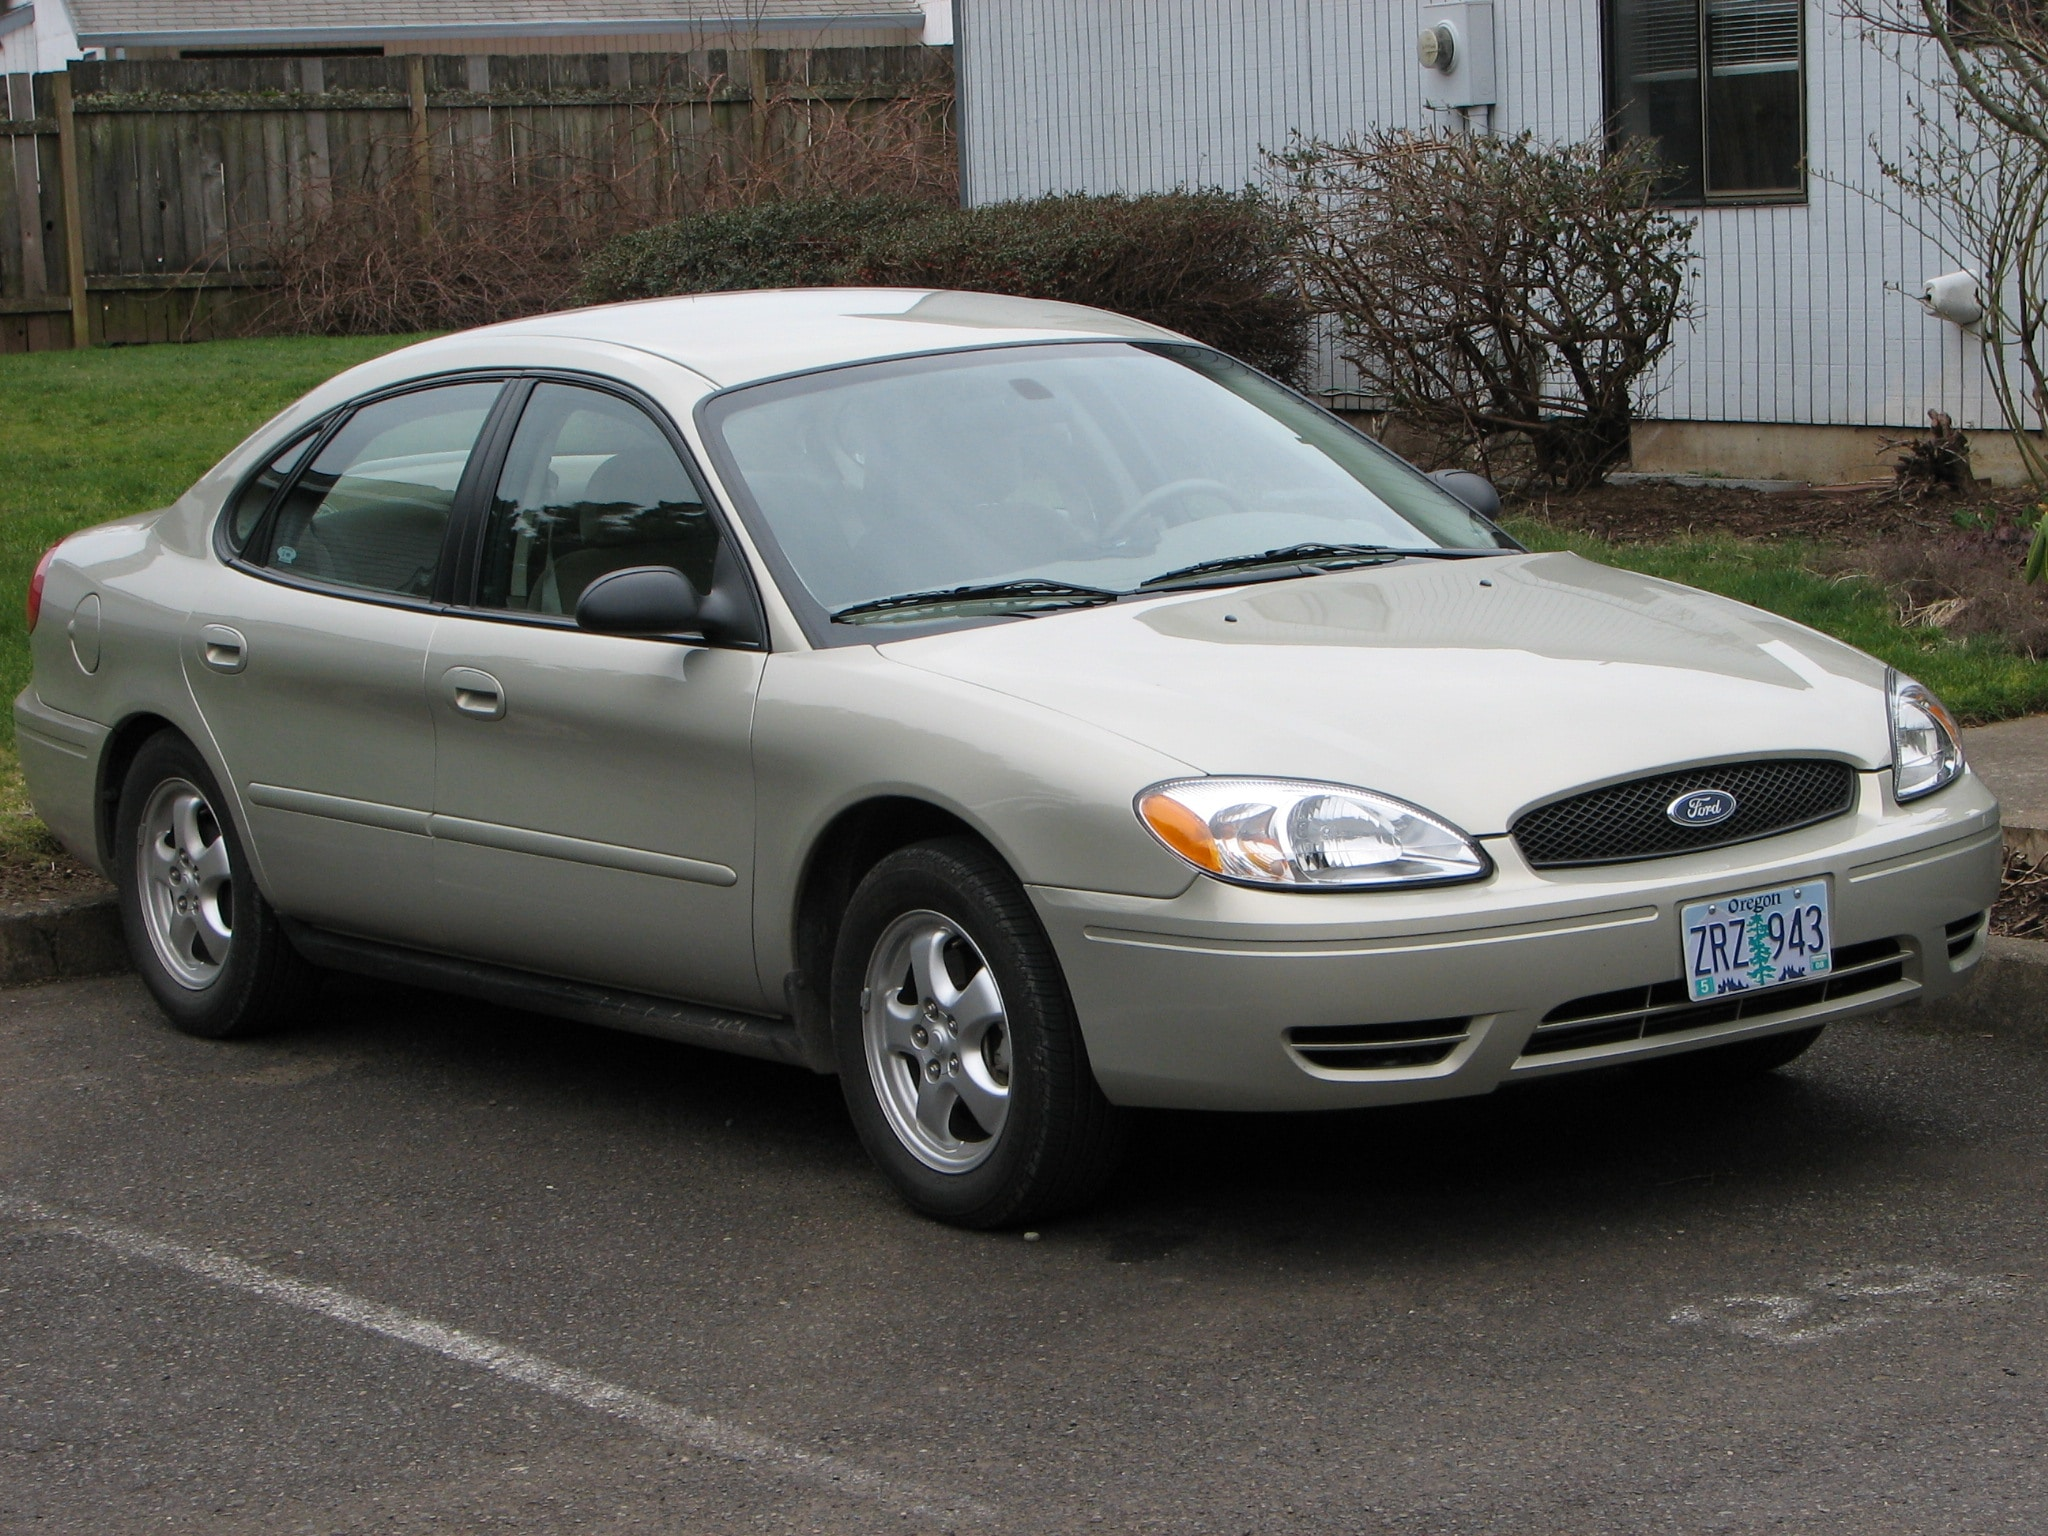 Ford Five Hundred - Taurus Before